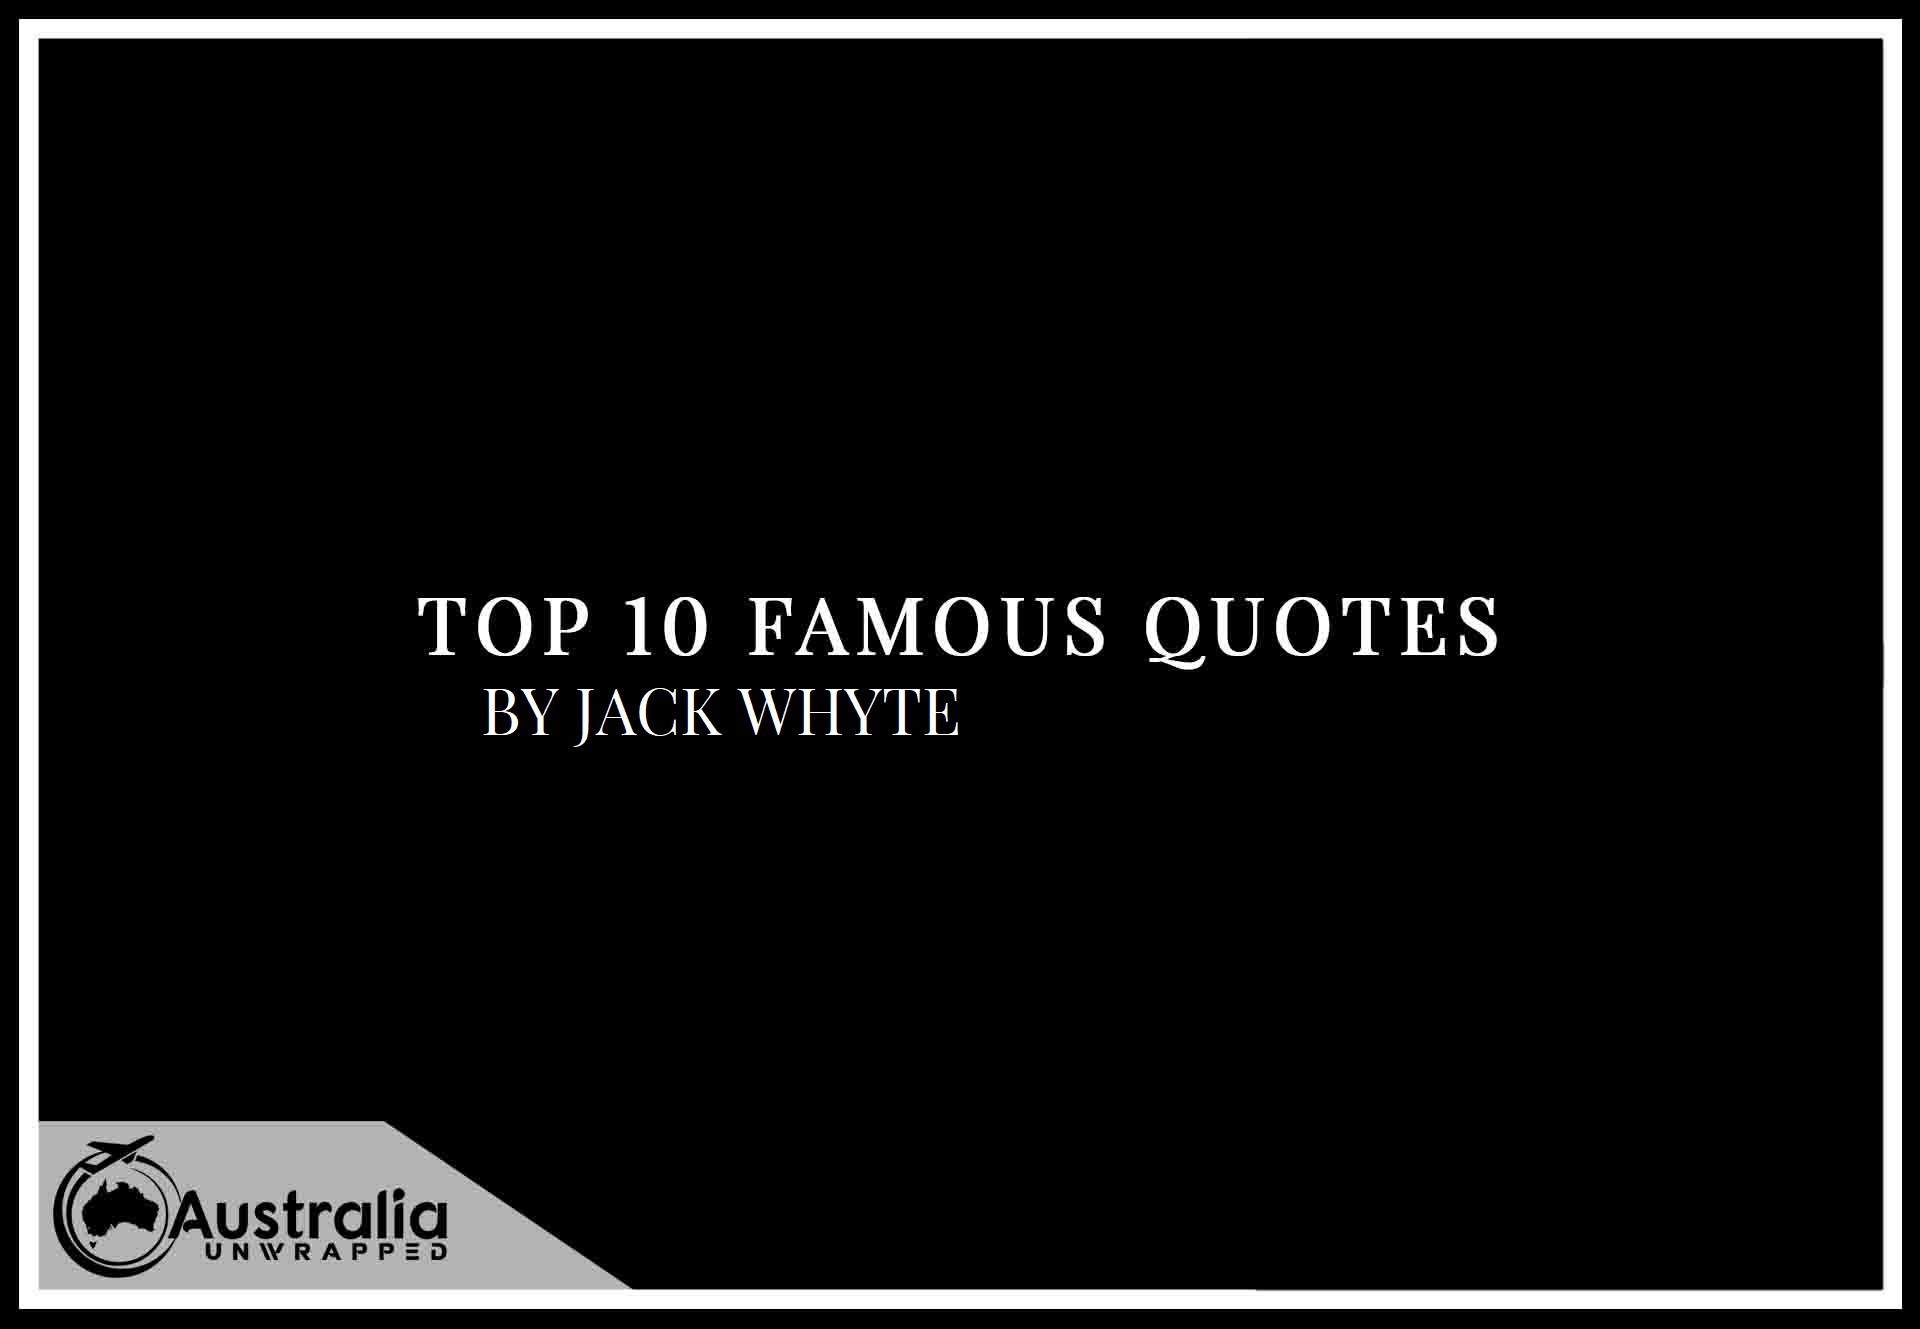 Top 10 Famous Quotes by Author Jack Whyte